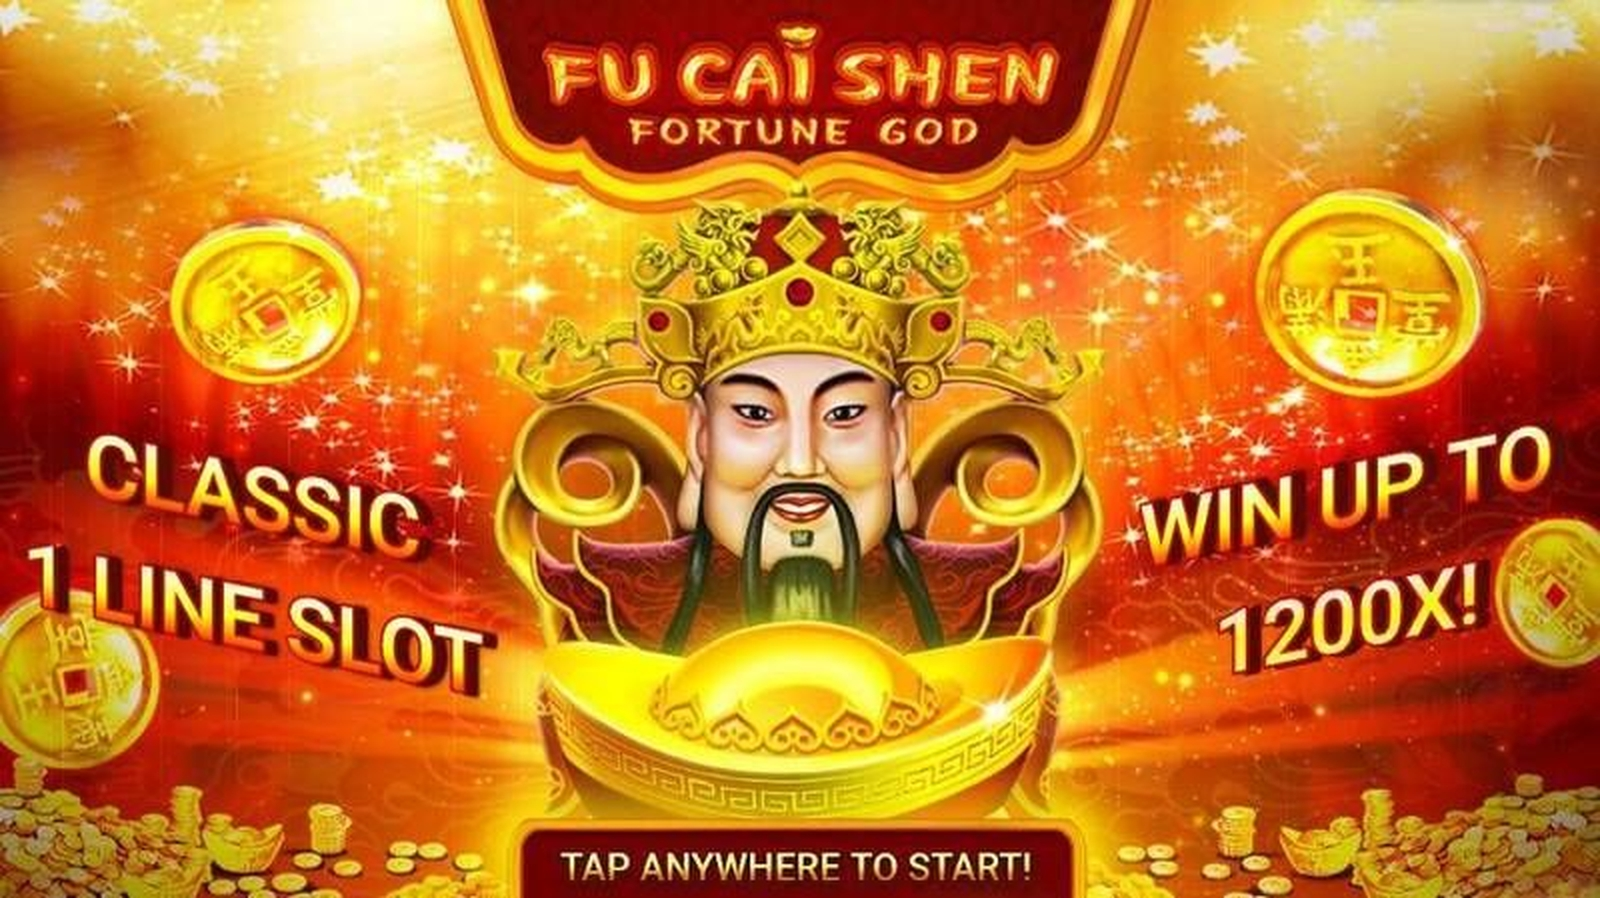 The Fu Cai Shen Online Slot Demo Game by Booongo Gaming